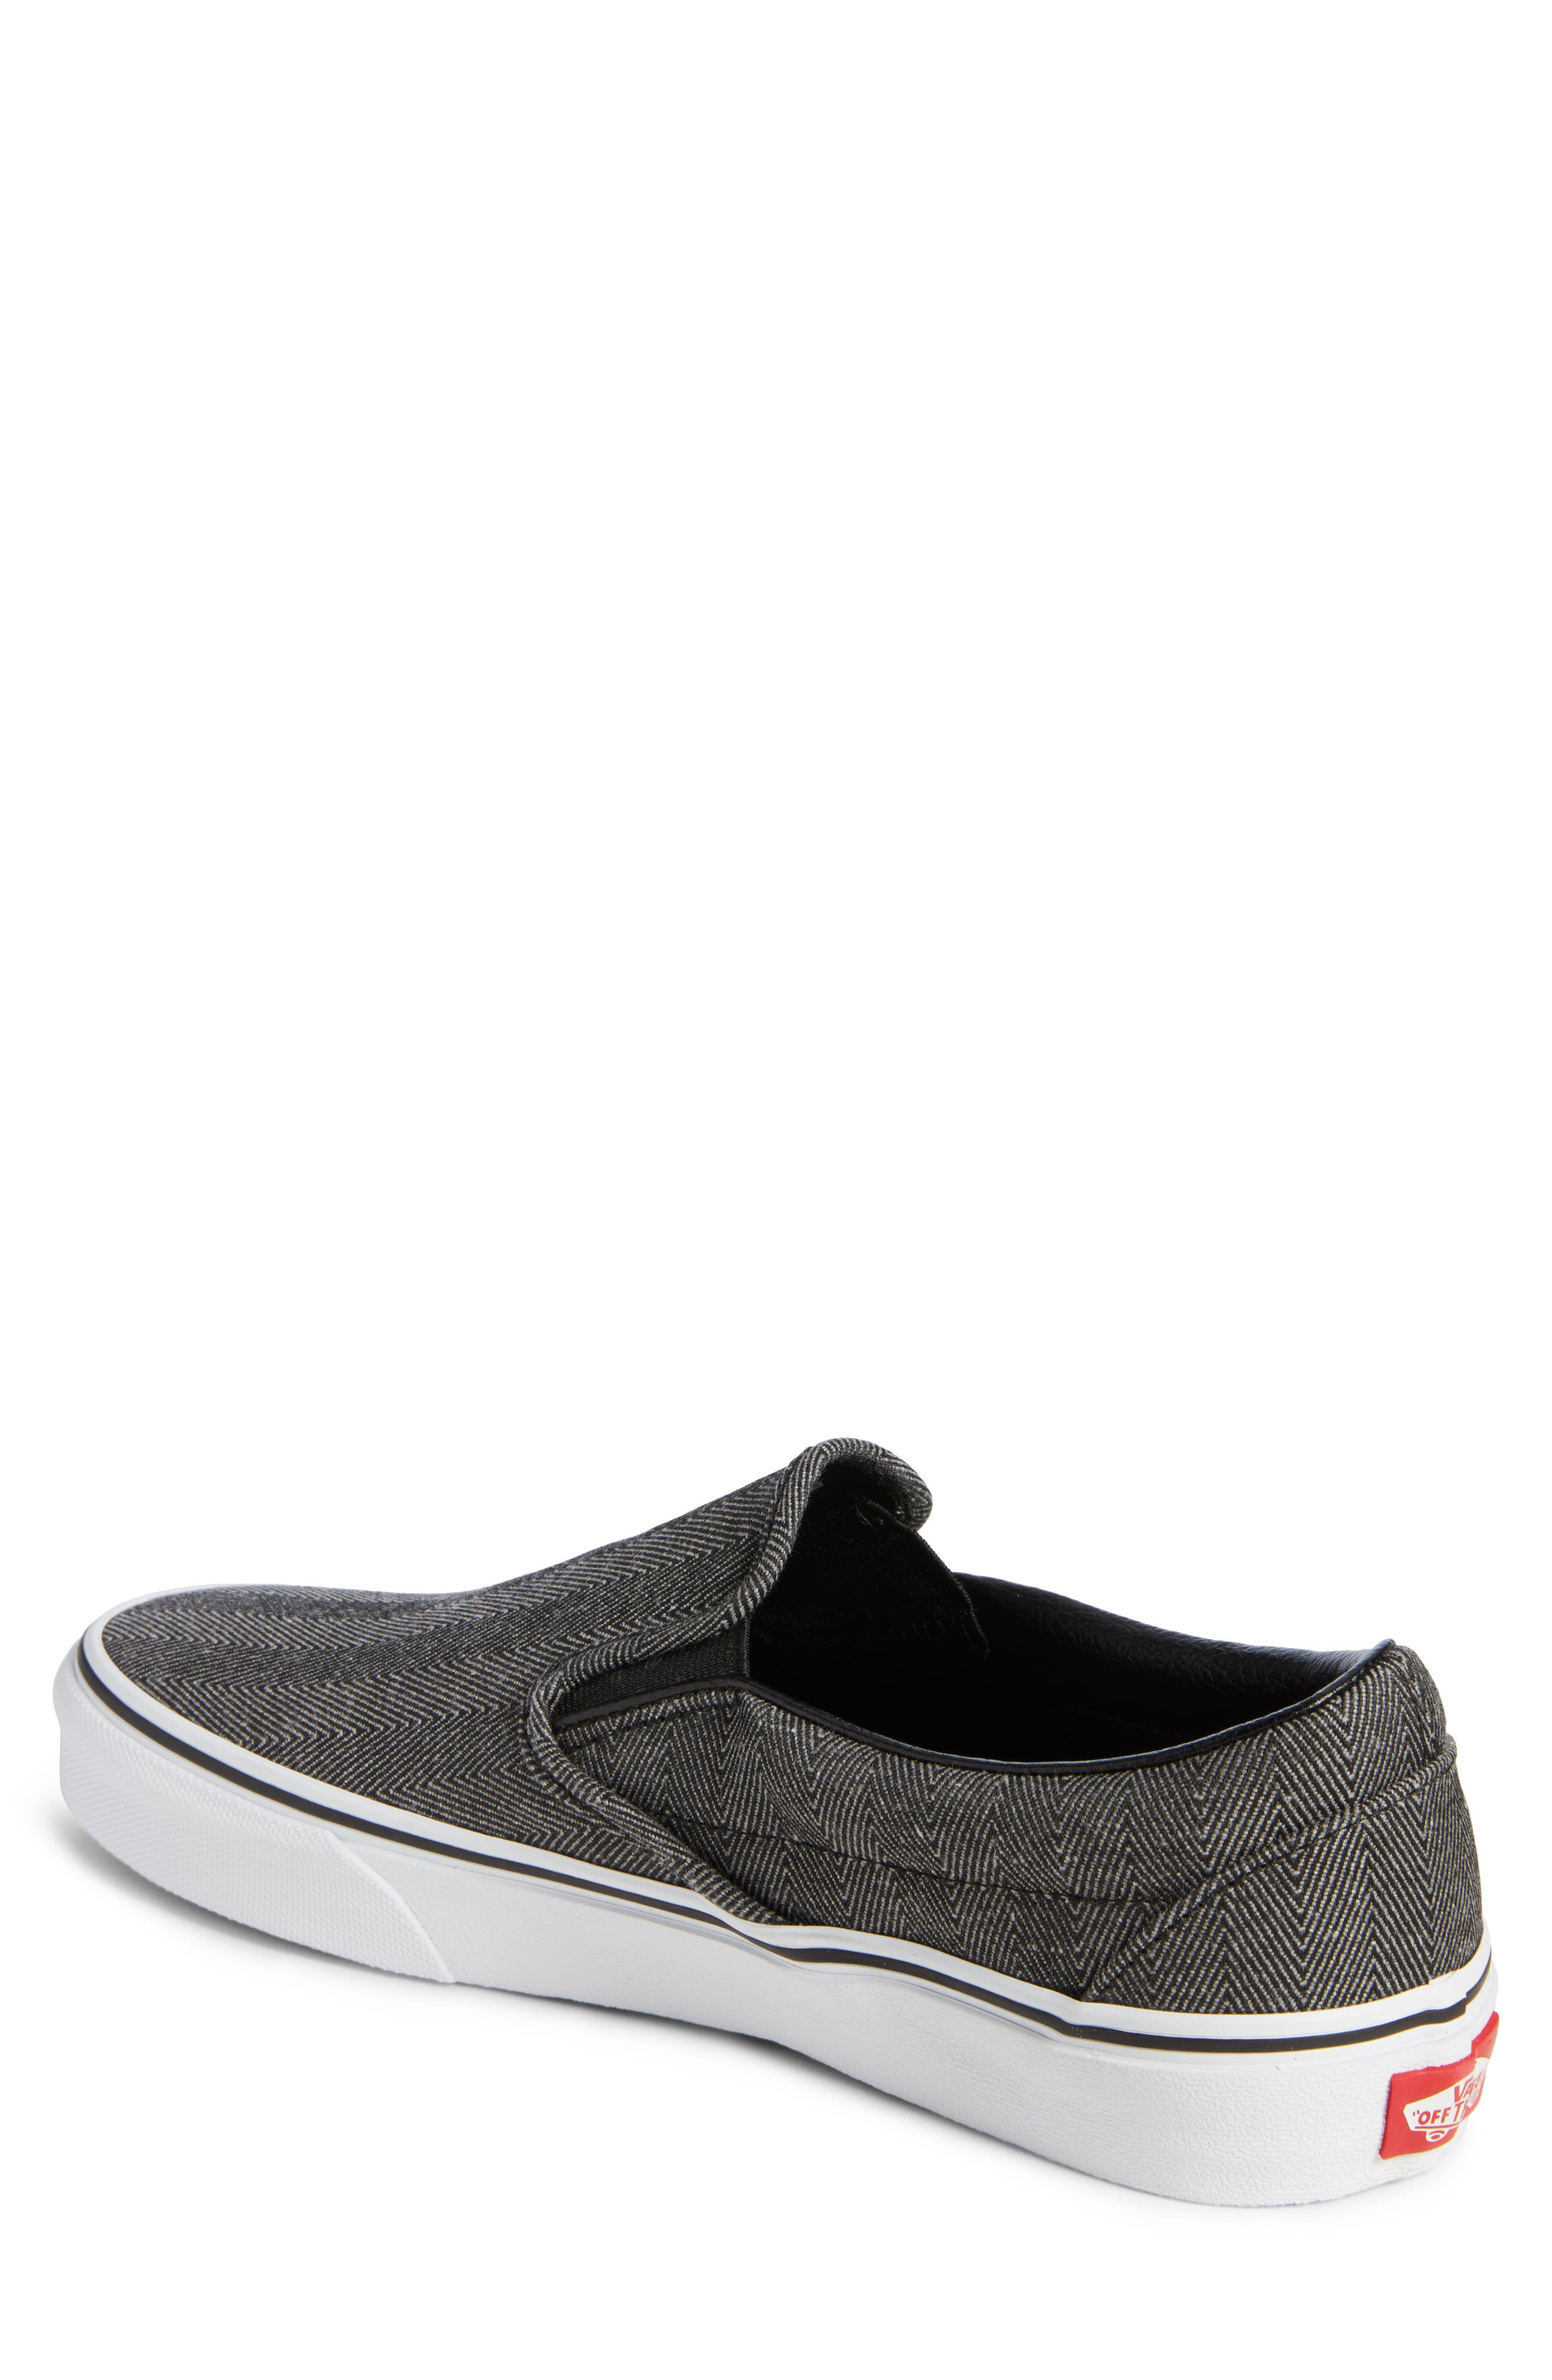 'Classic' Slip-On Sneaker,                             Alternate thumbnail 2, color,                             019